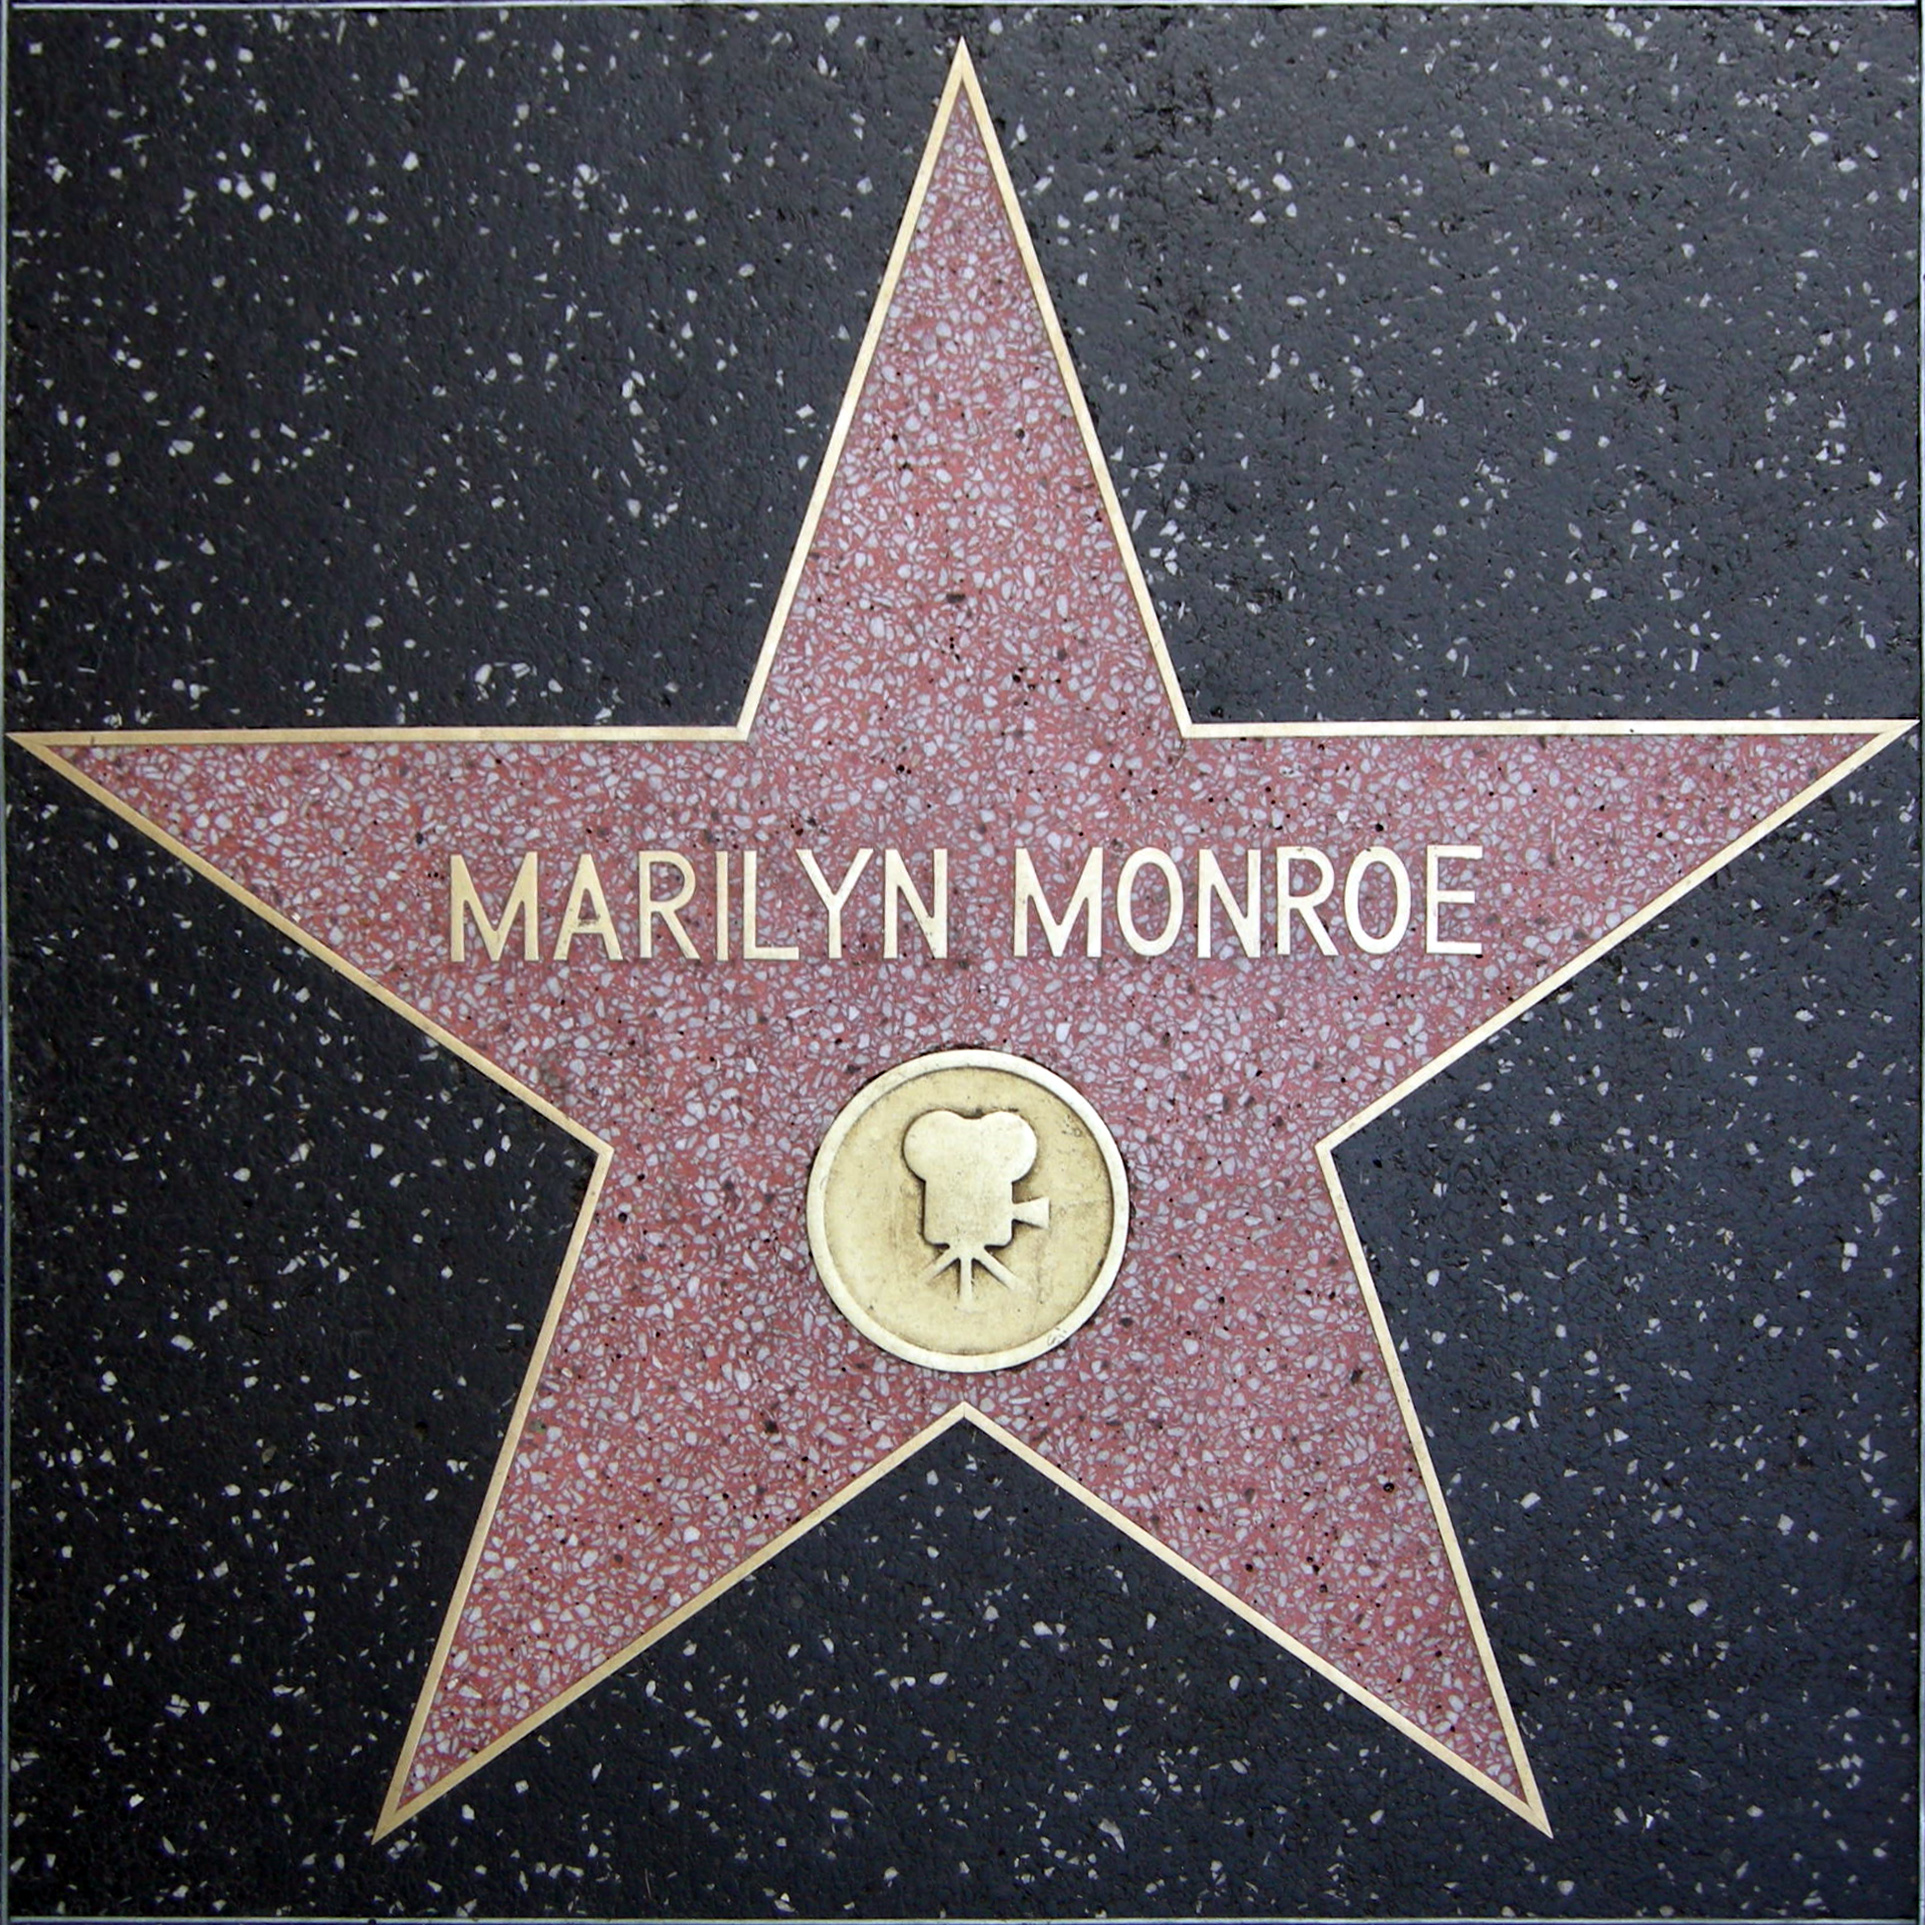 life of fame marilyn monroe Marilyn monroe is possibly the most iconic figure in american culture and the most recognizable sex symbol of all times however, behind monroe's photogenic smile was a fragile individual who was exploited and subjected to mind control by powerful handlers the first part of this two-part series.